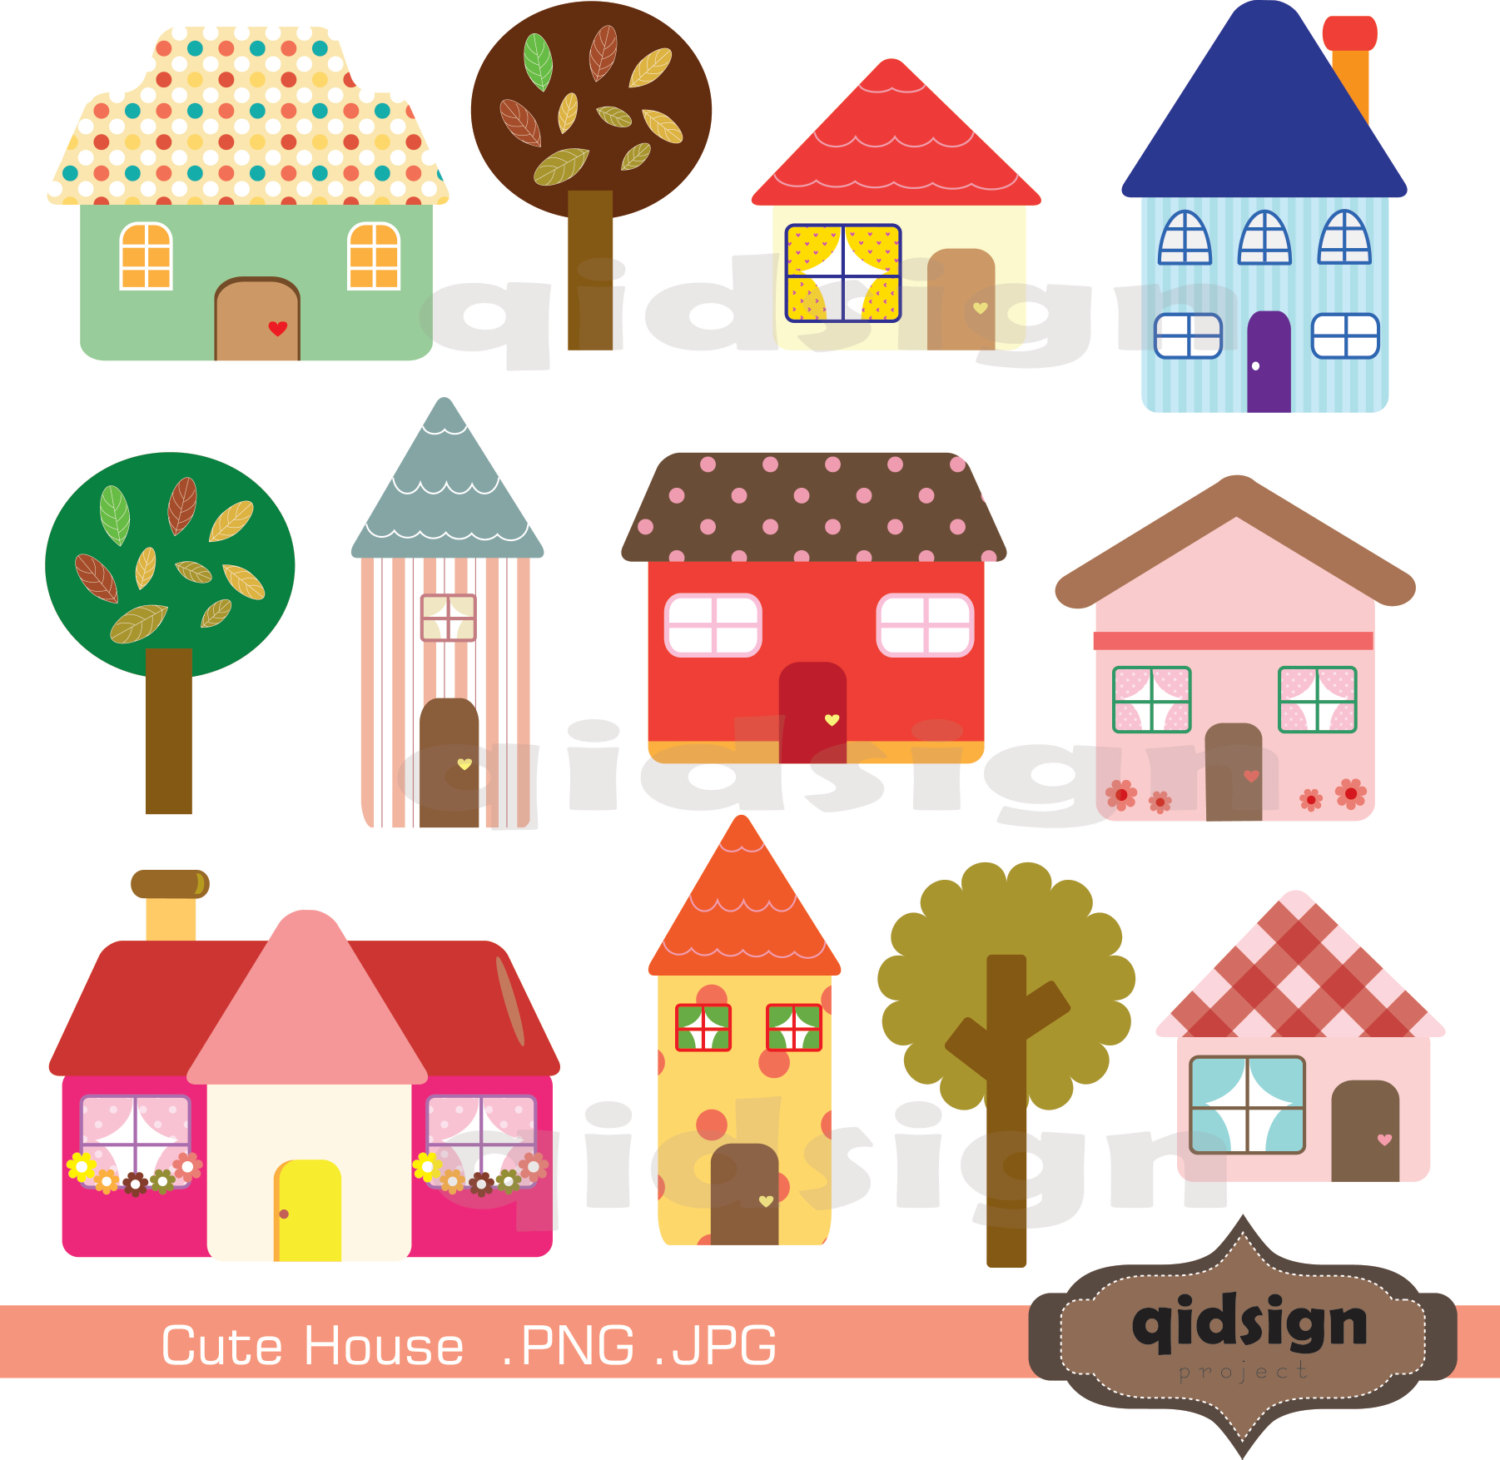 Cute House Clipart Personal .